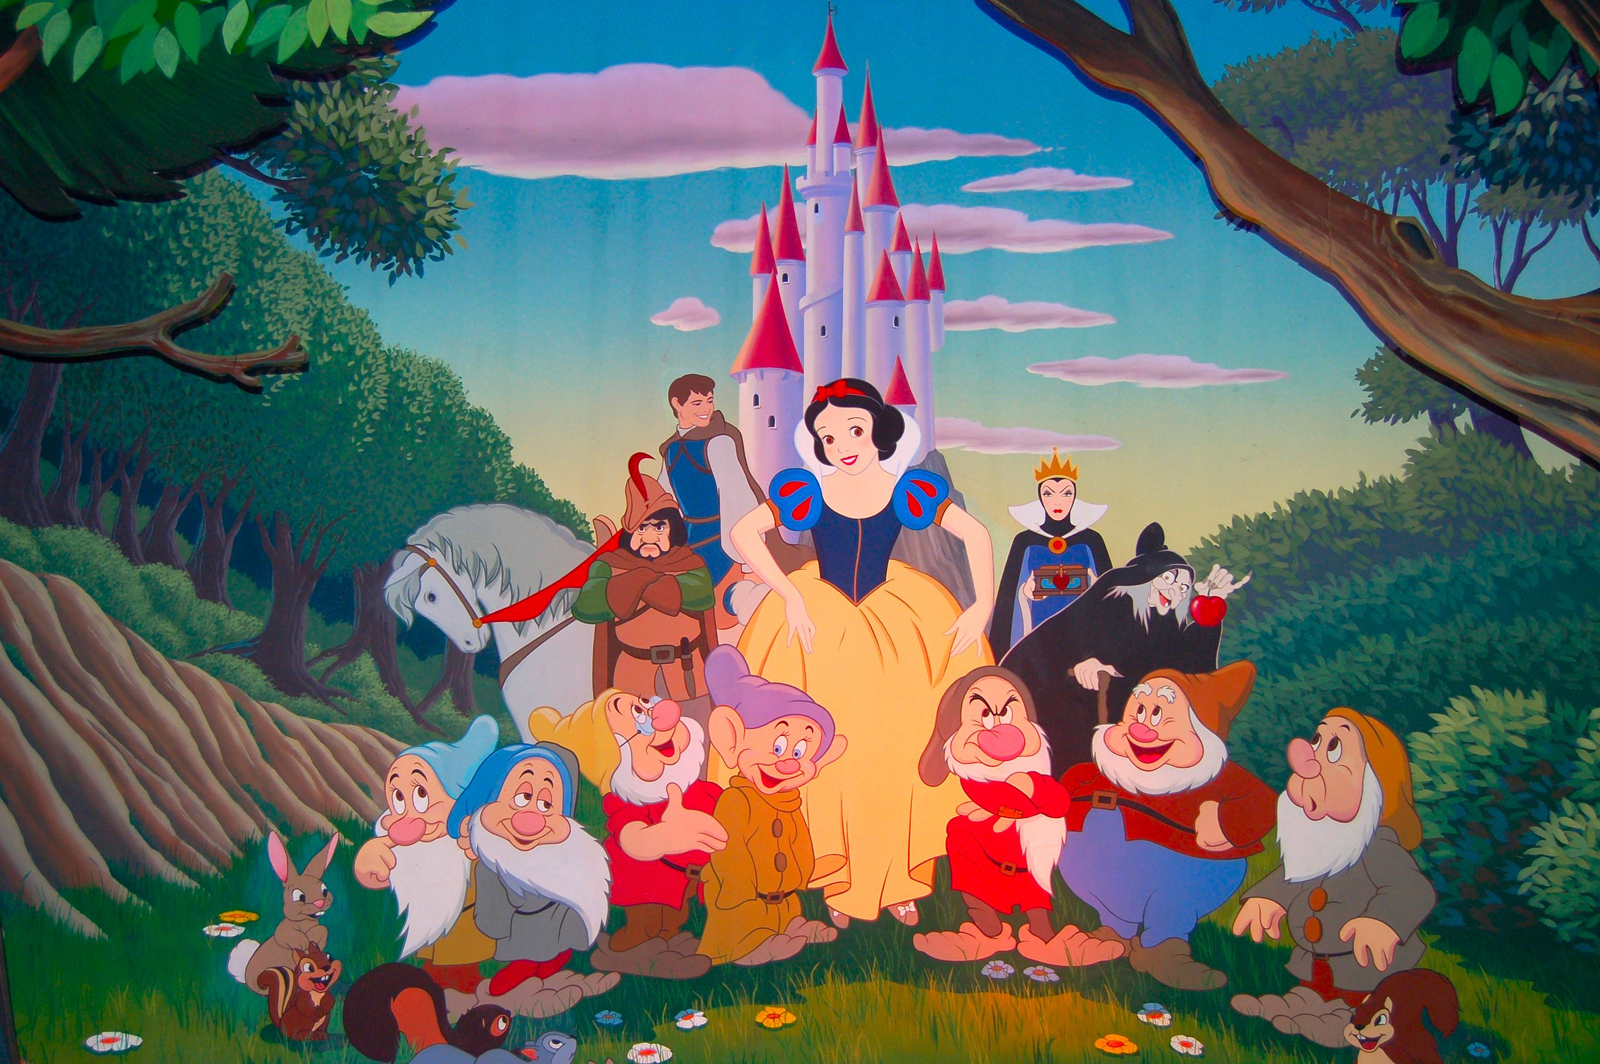 Filmic light snow white archive april 2011 for Disneyland mural